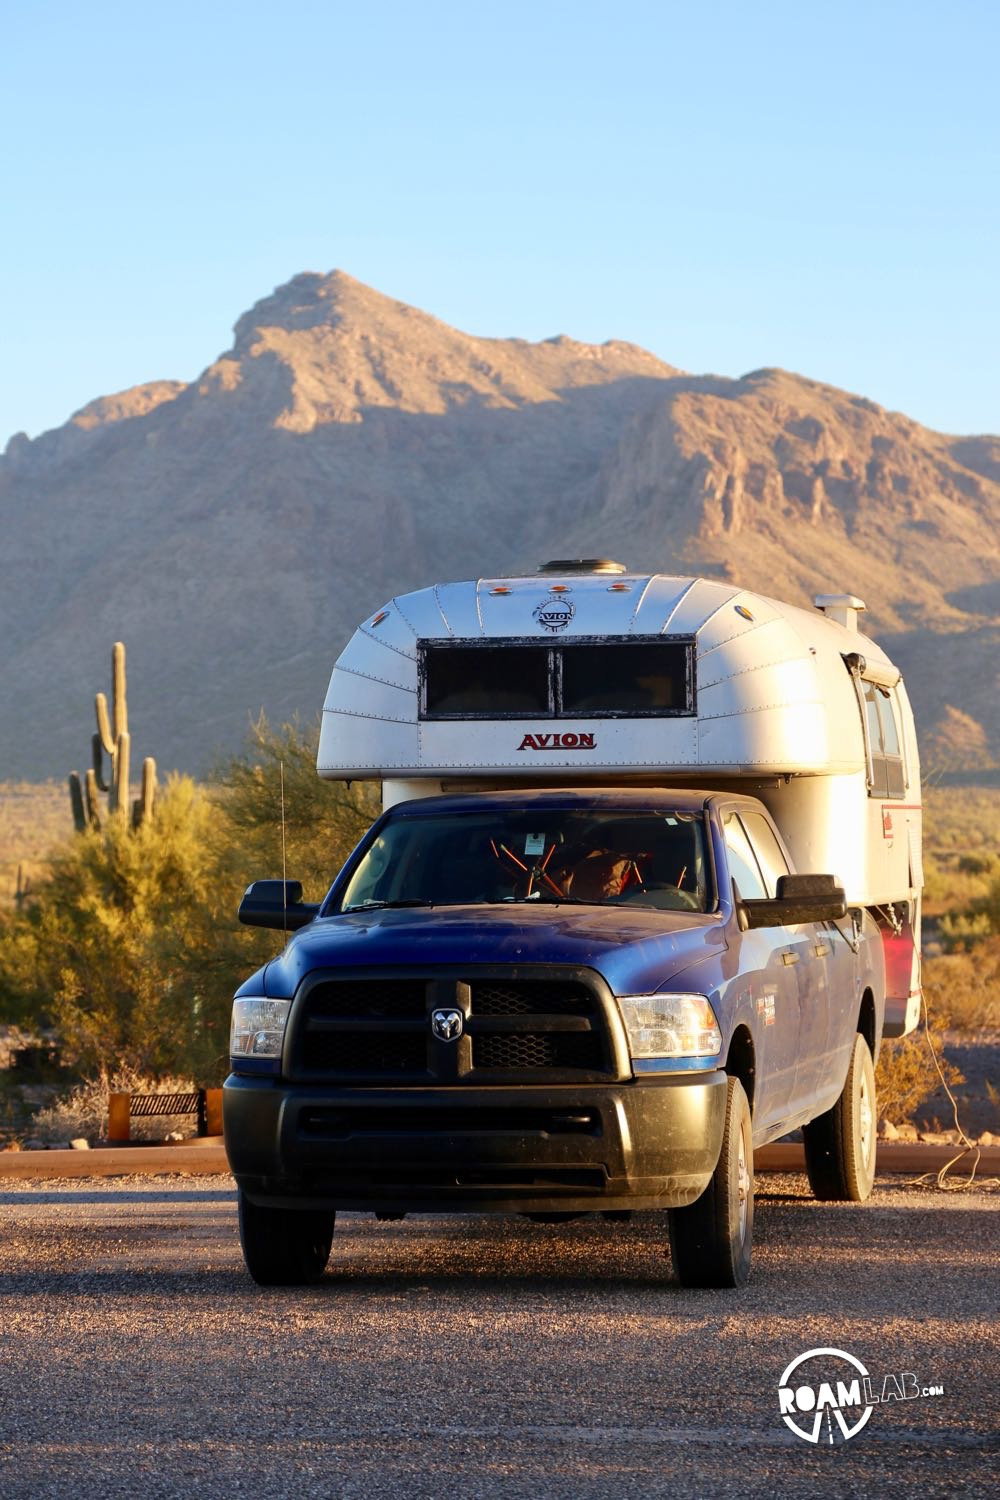 Our Avion Ultra C11 truck camper at Picacho Peak State Park, Arizona